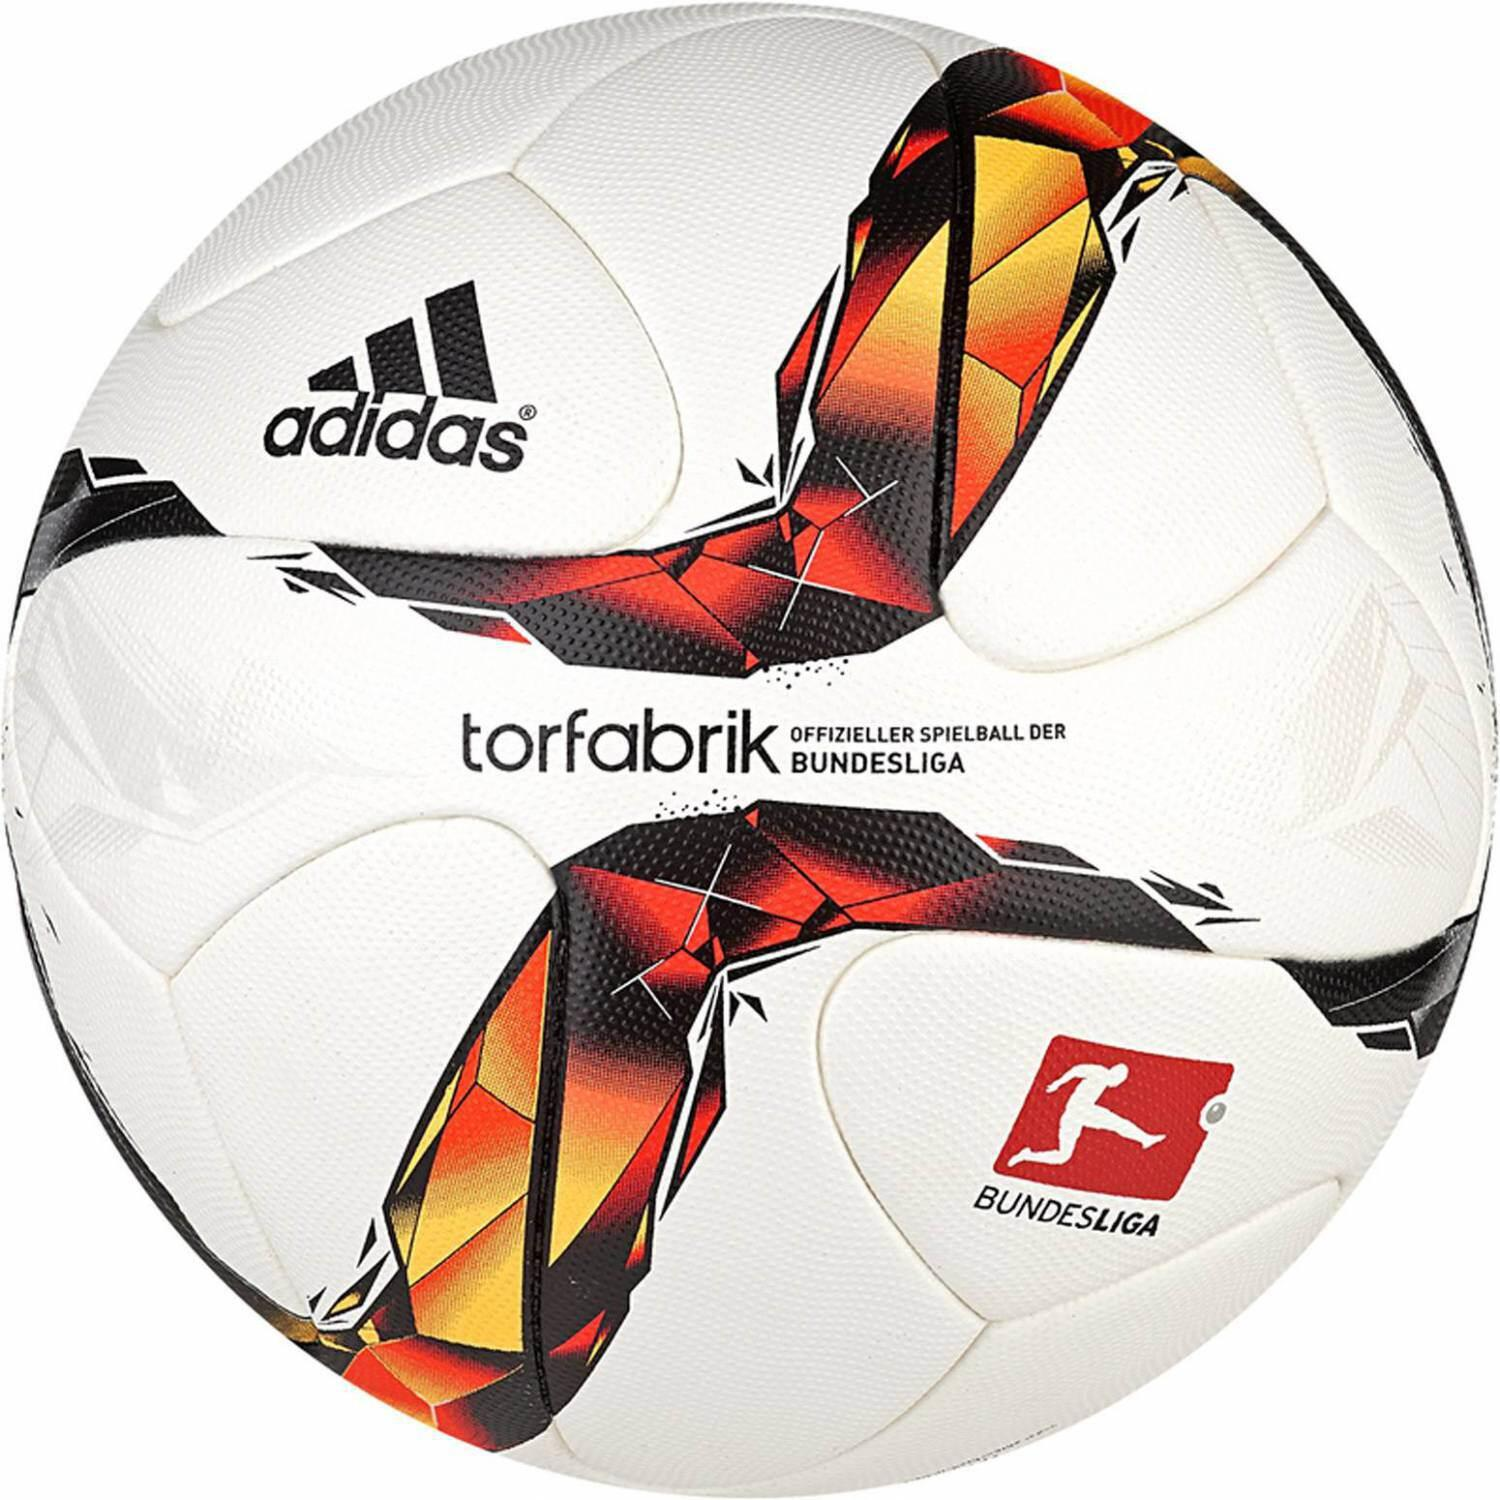 adidas-torfabrik-2015-matchball-gr-ouml-szlig-e-5-white-solar-red-black-solar-orange-